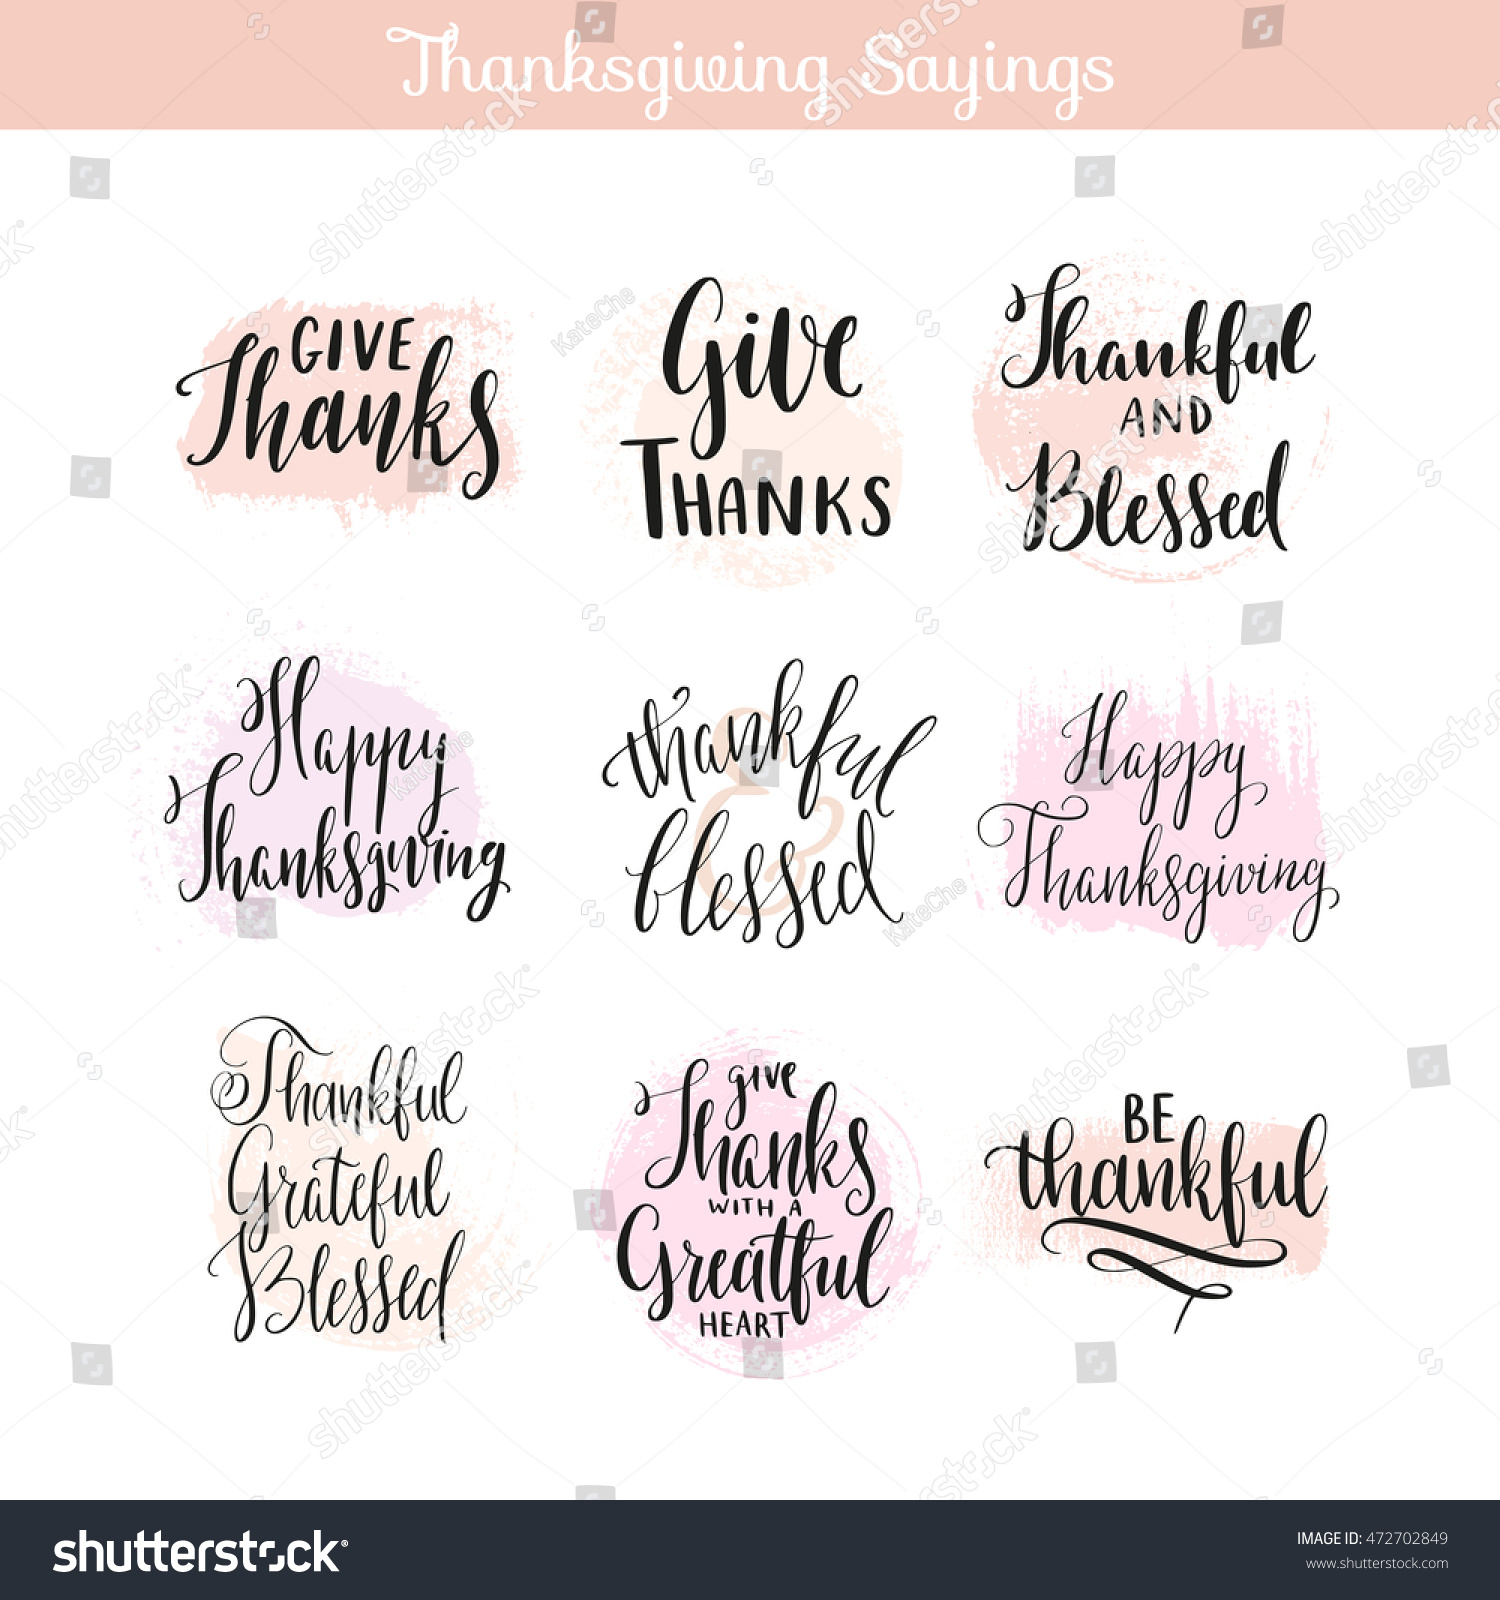 Thanksgiving Day Sayings Quotes Creative Hand Stock Vector (2018 ...